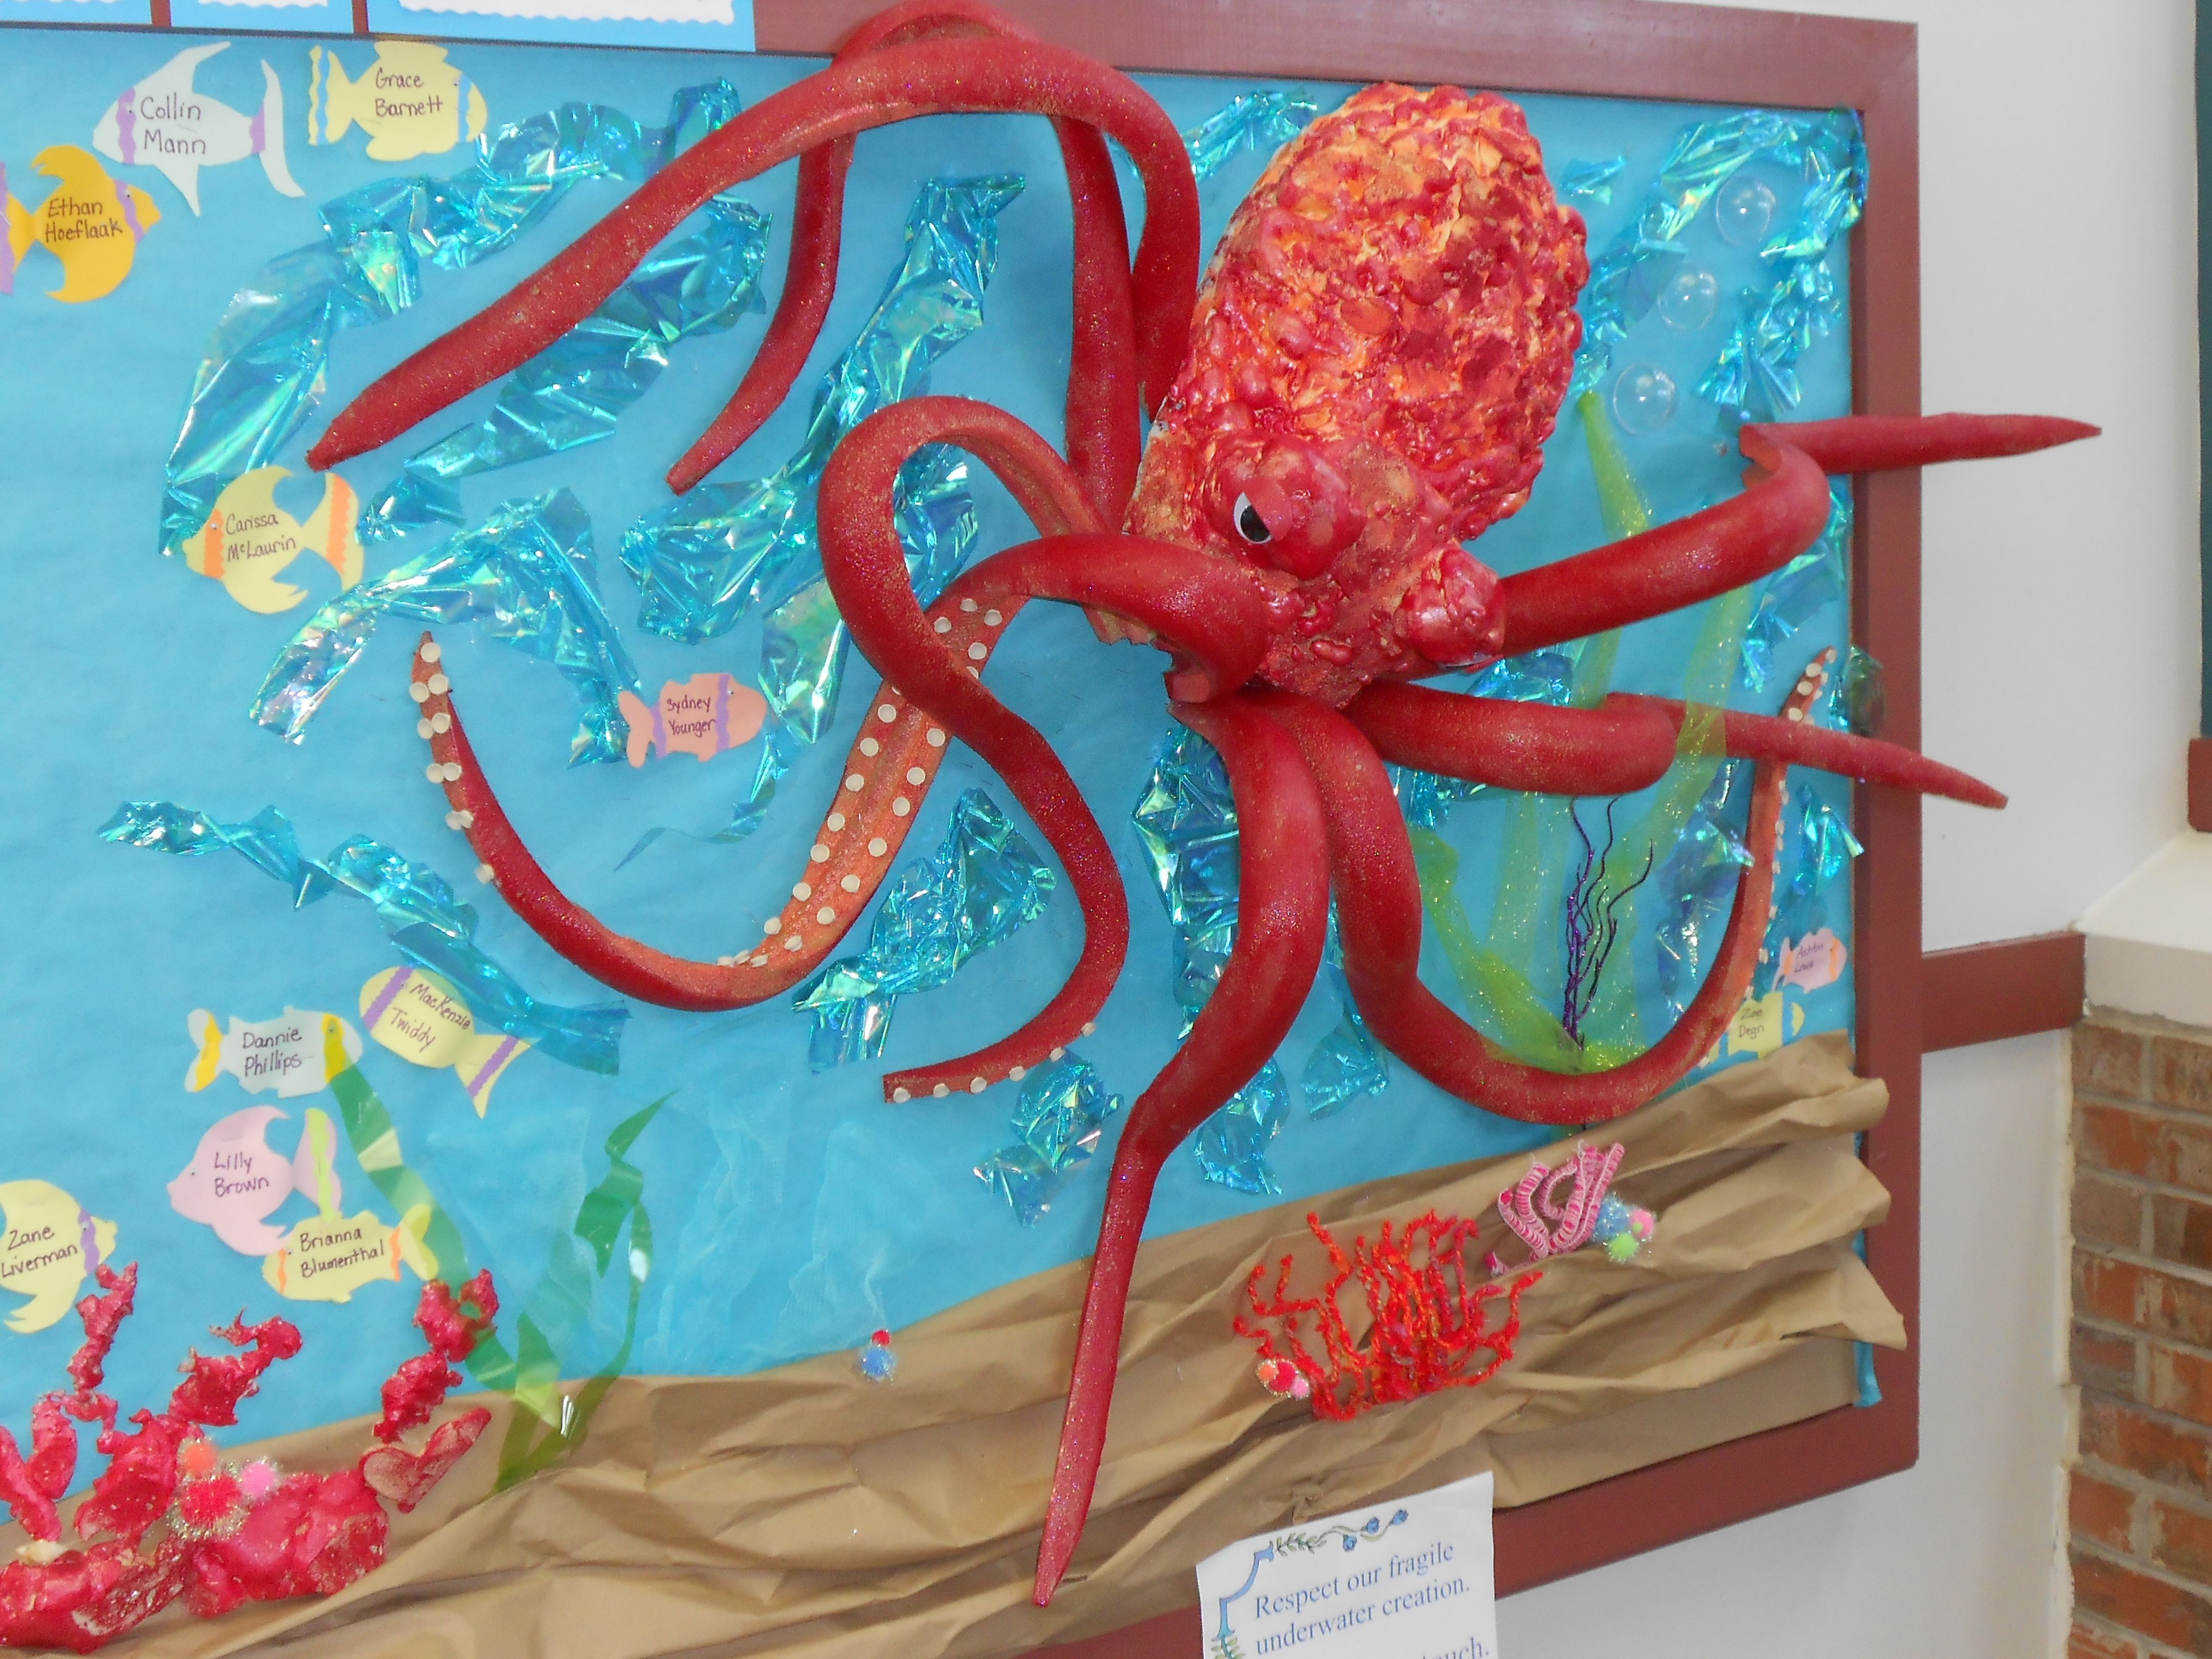 Foam board craft ideas - Under The Sea Theme Bulletin Board Octopus Made With Pool Noodles And Spray Foam Insulation